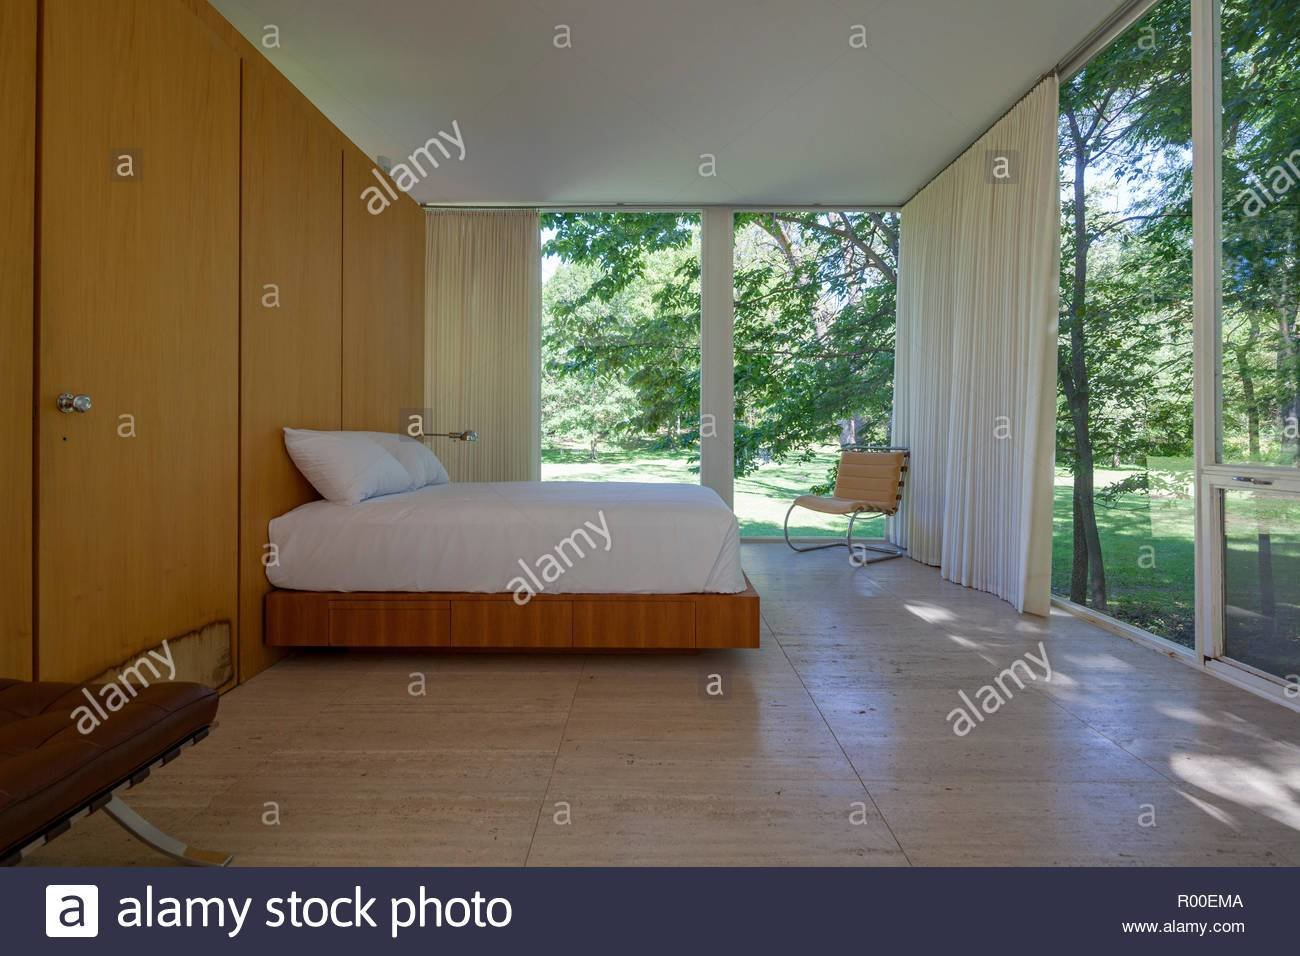 Best Farnsworth House Mies Interior Stock Photos Farnsworth House Mies Interior Stock Images Alamy With Pictures